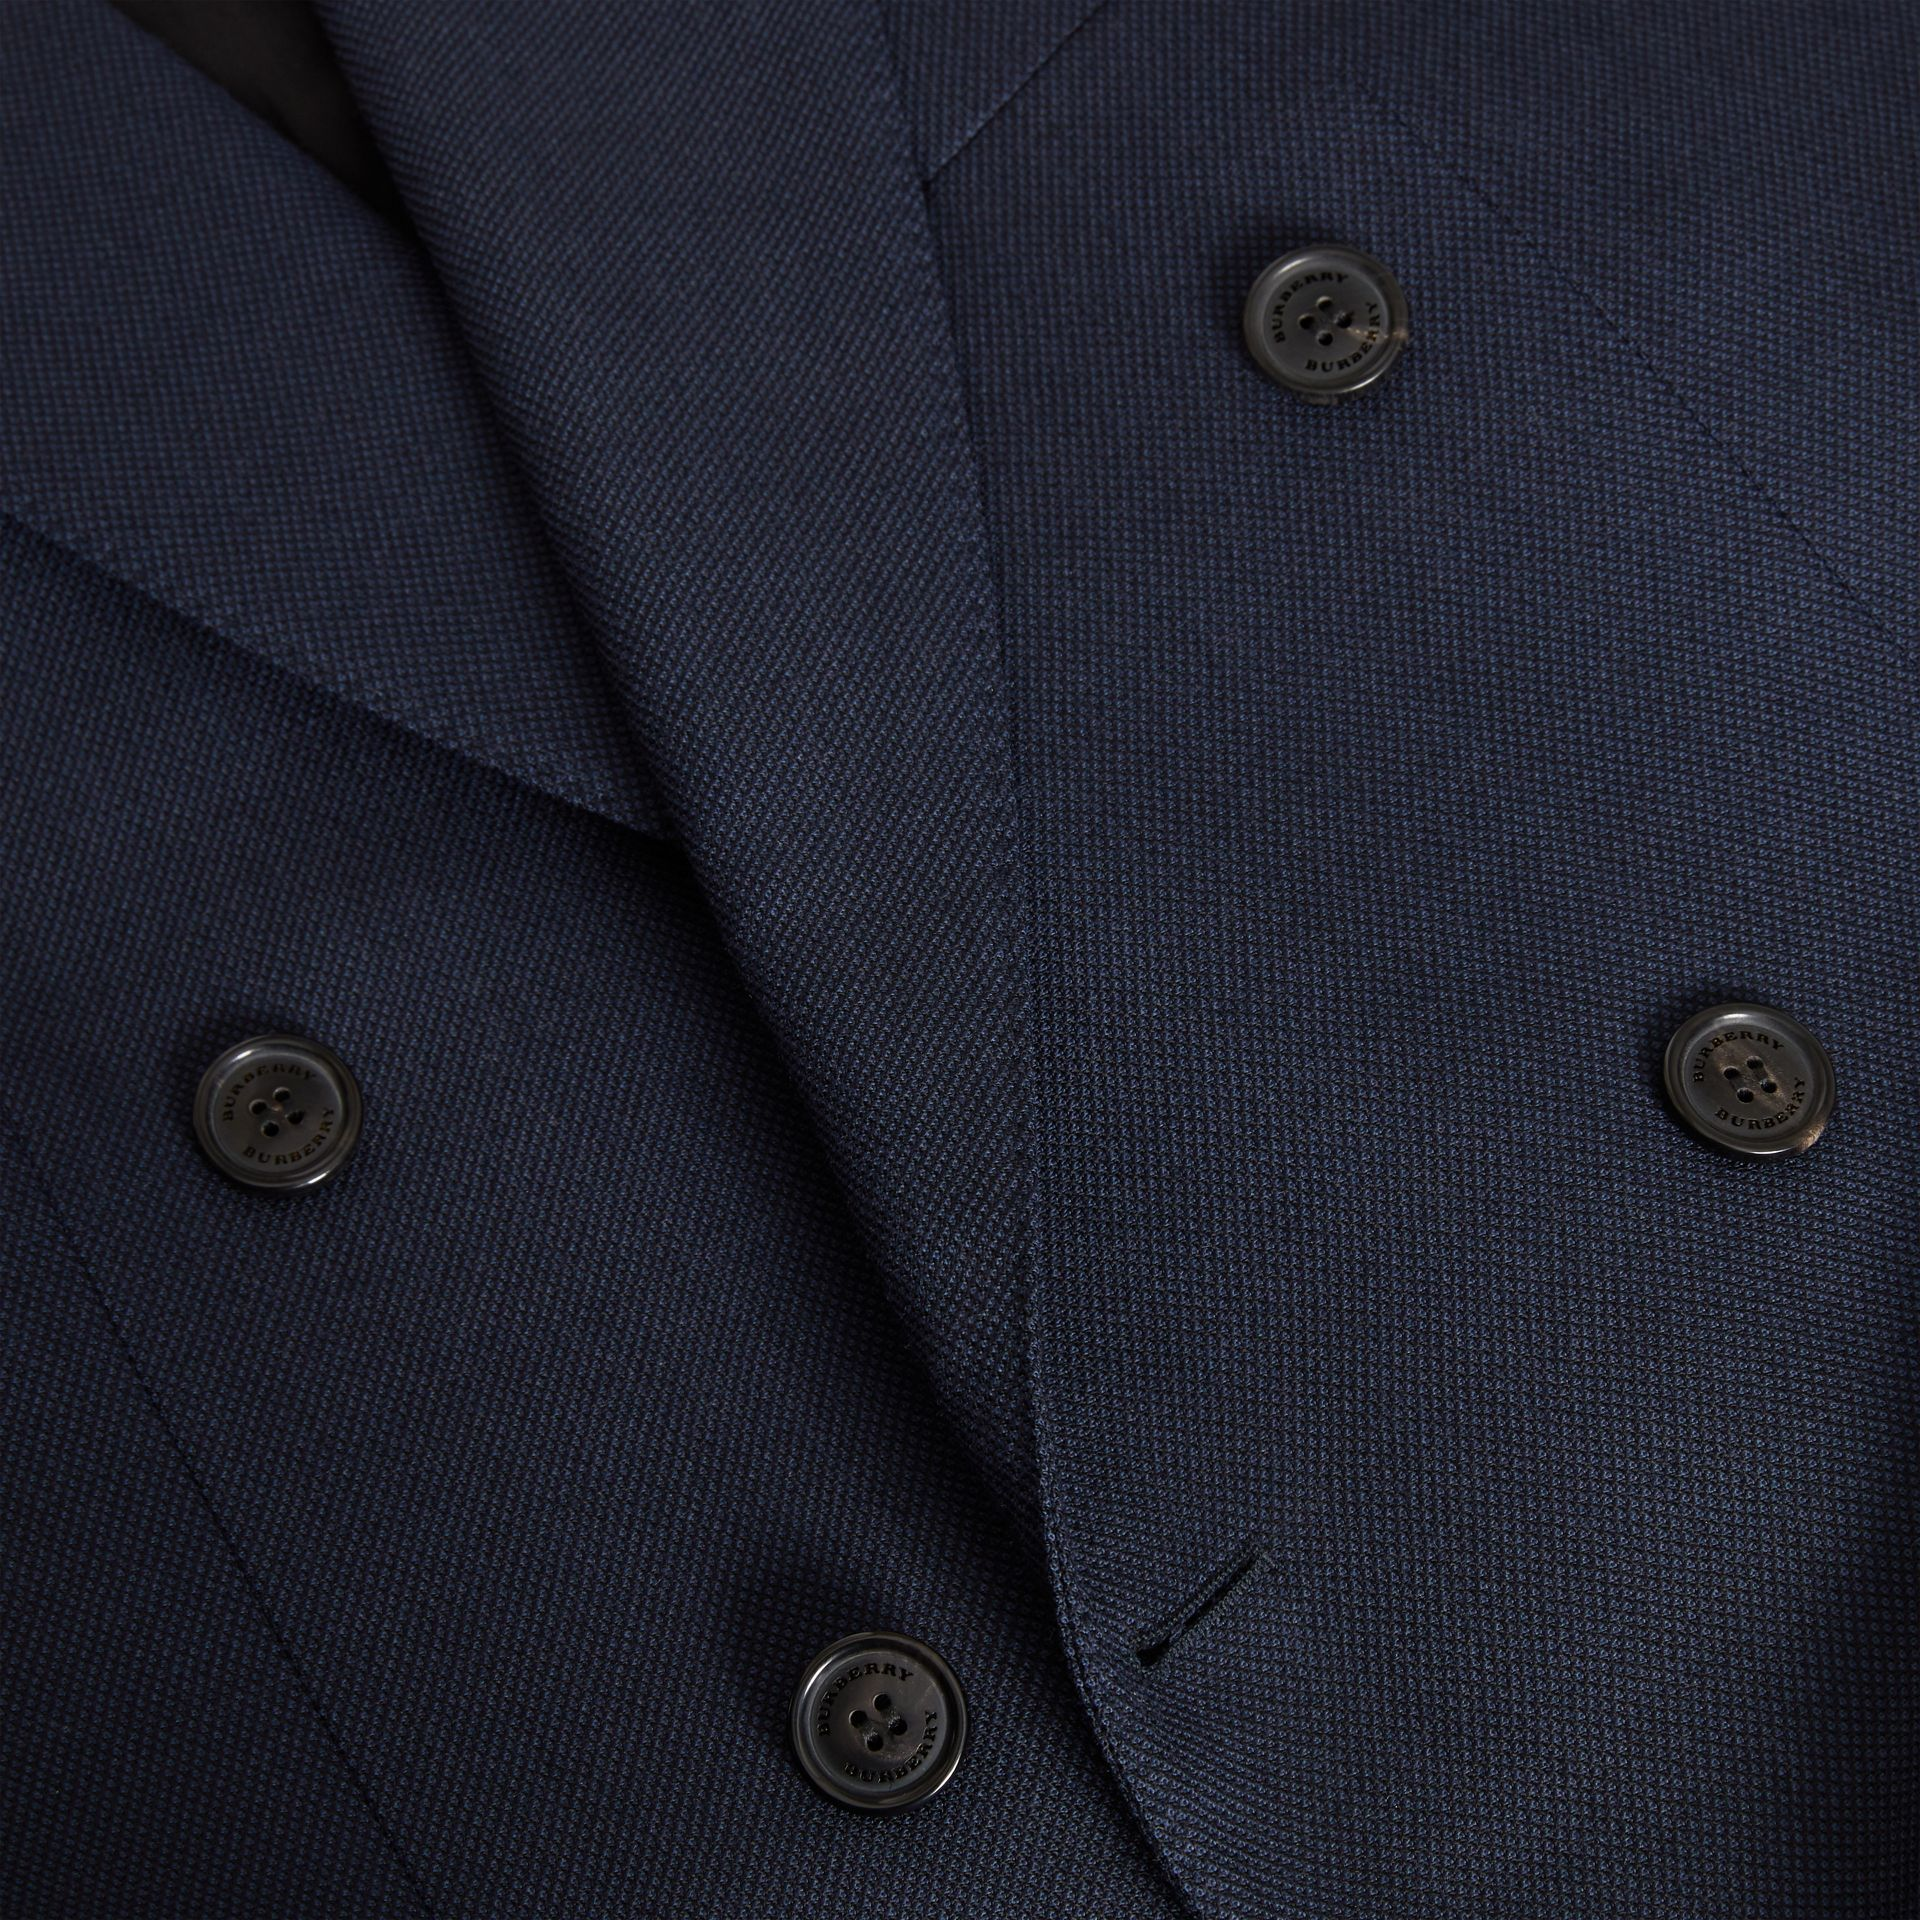 English Fit Birdseye Wool Cashmere Suit in Navy Blue | Burberry - gallery image 6